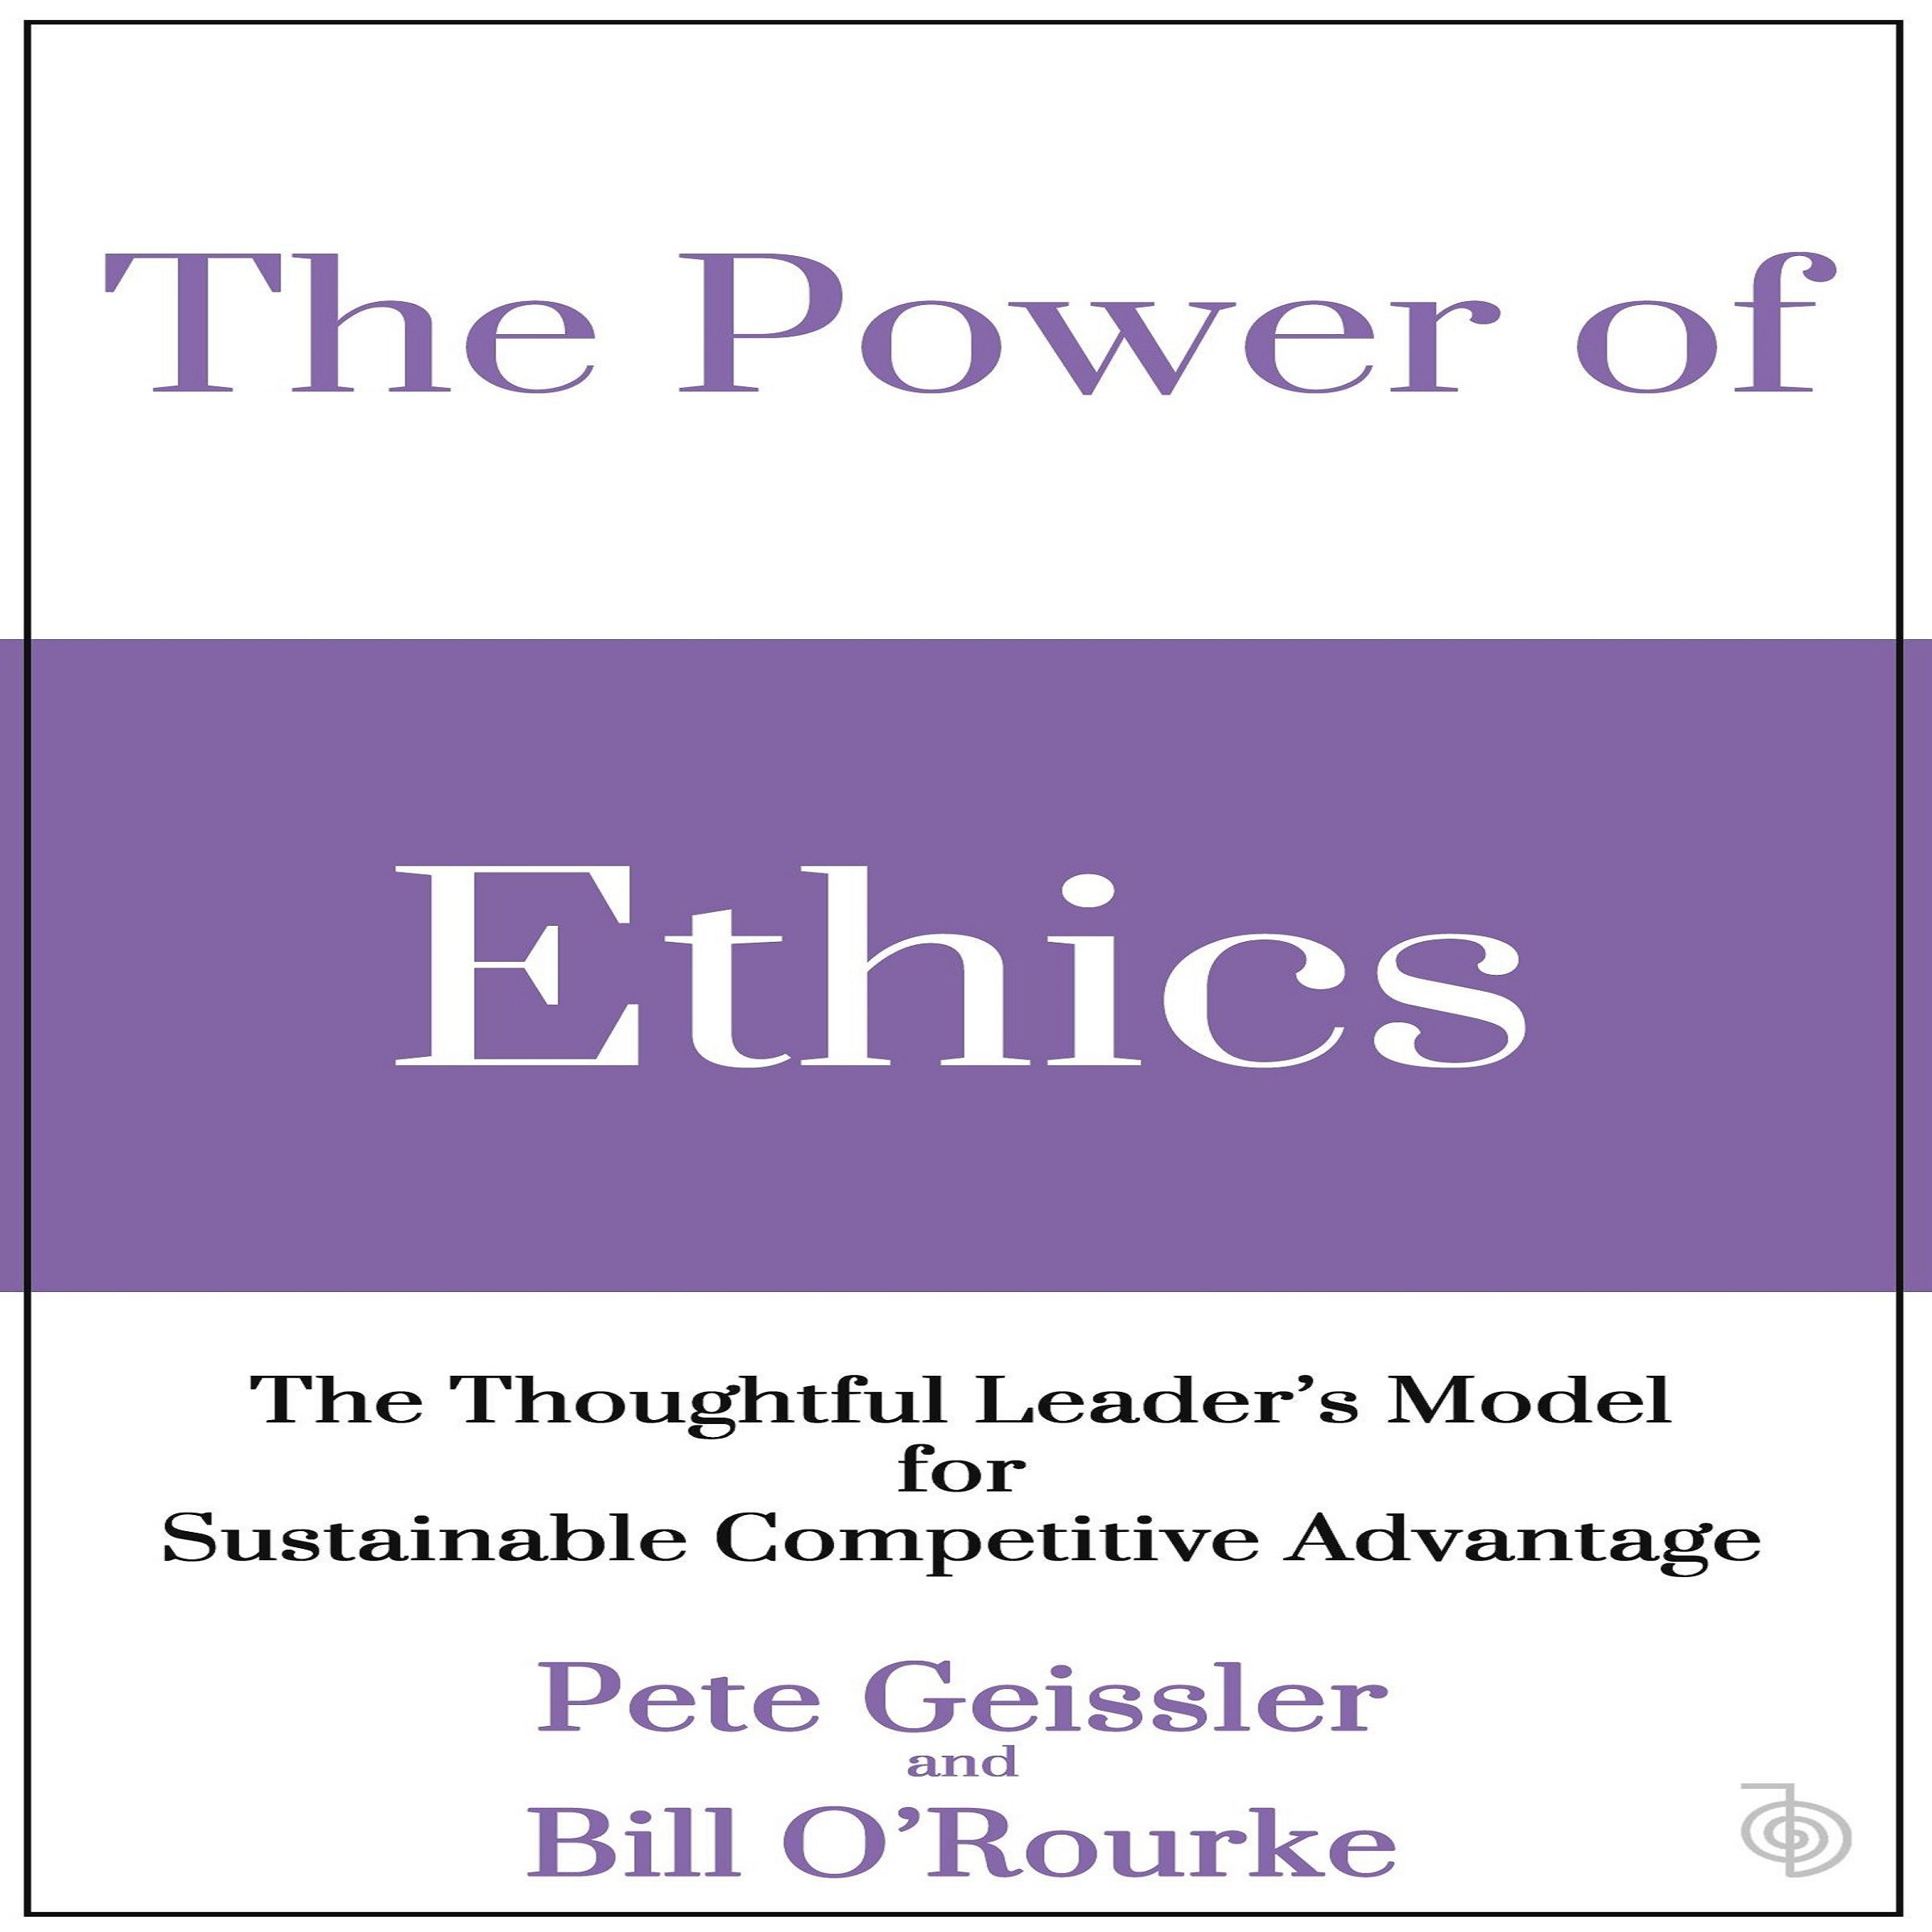 The Power of Ethics: The Thoughtful Leader's Model for Sustainable Competitive Advantage